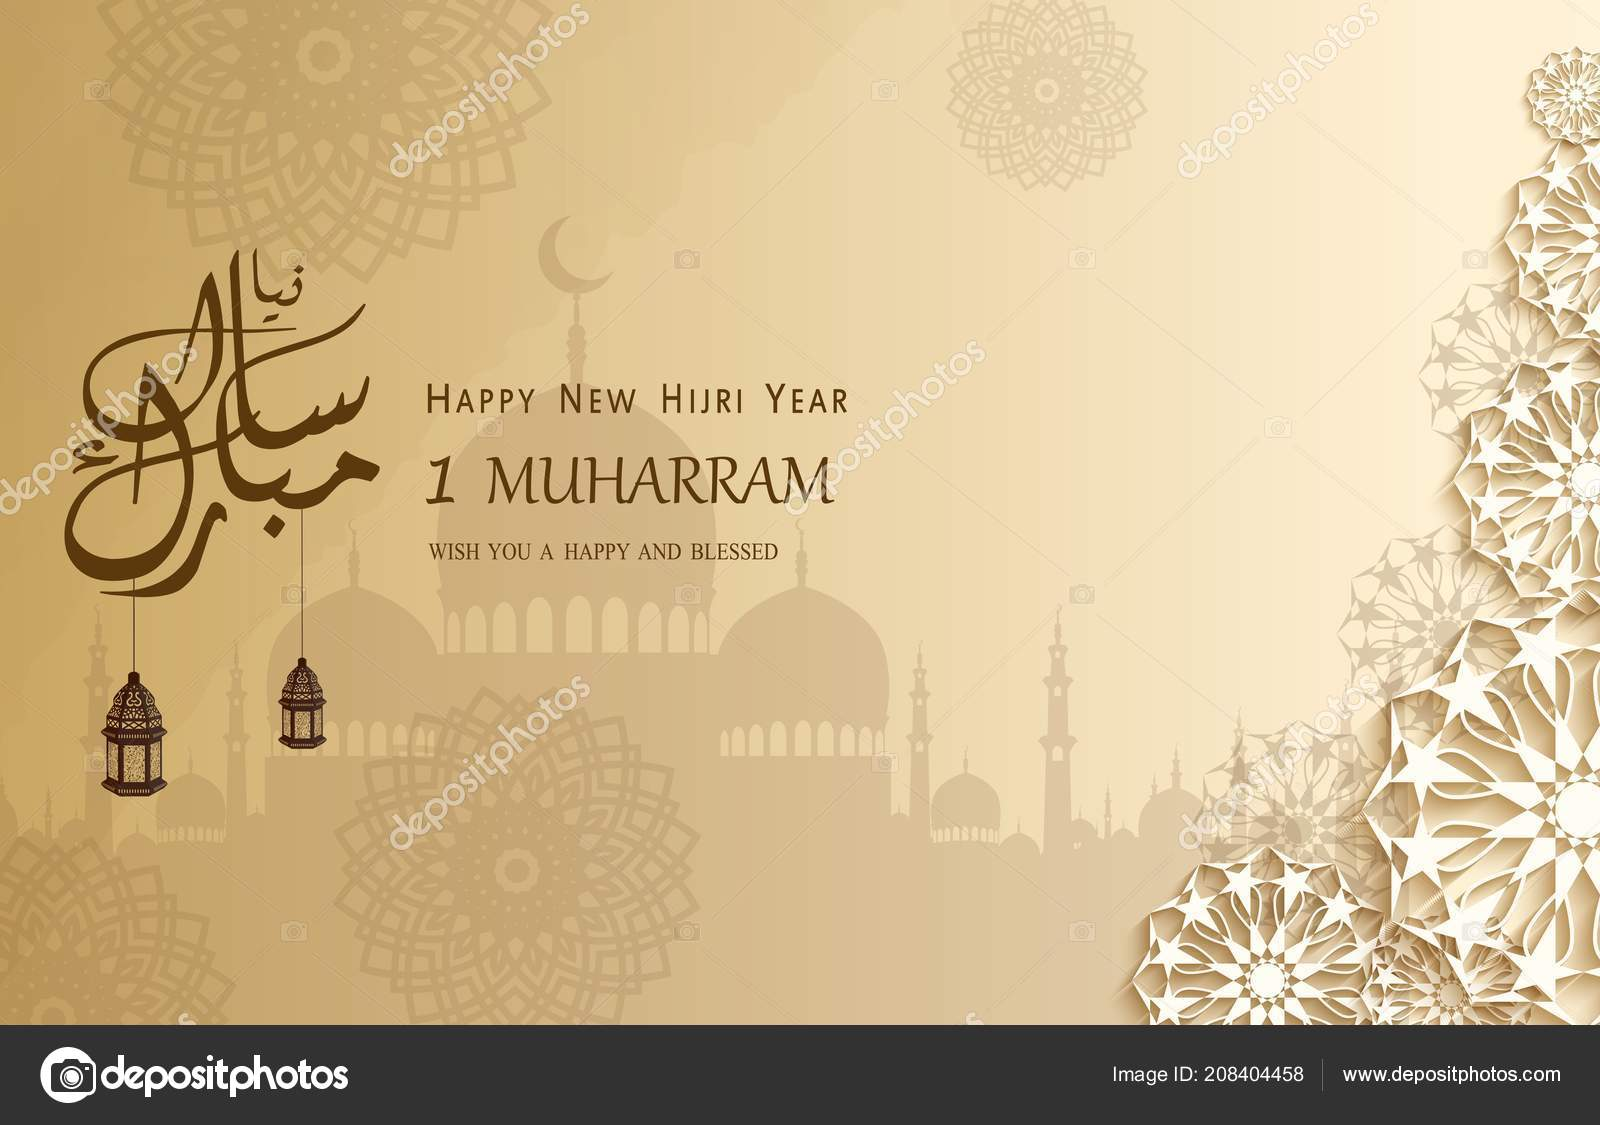 Vector Illustration Islamic New Year Happy Muharram Greeting Card